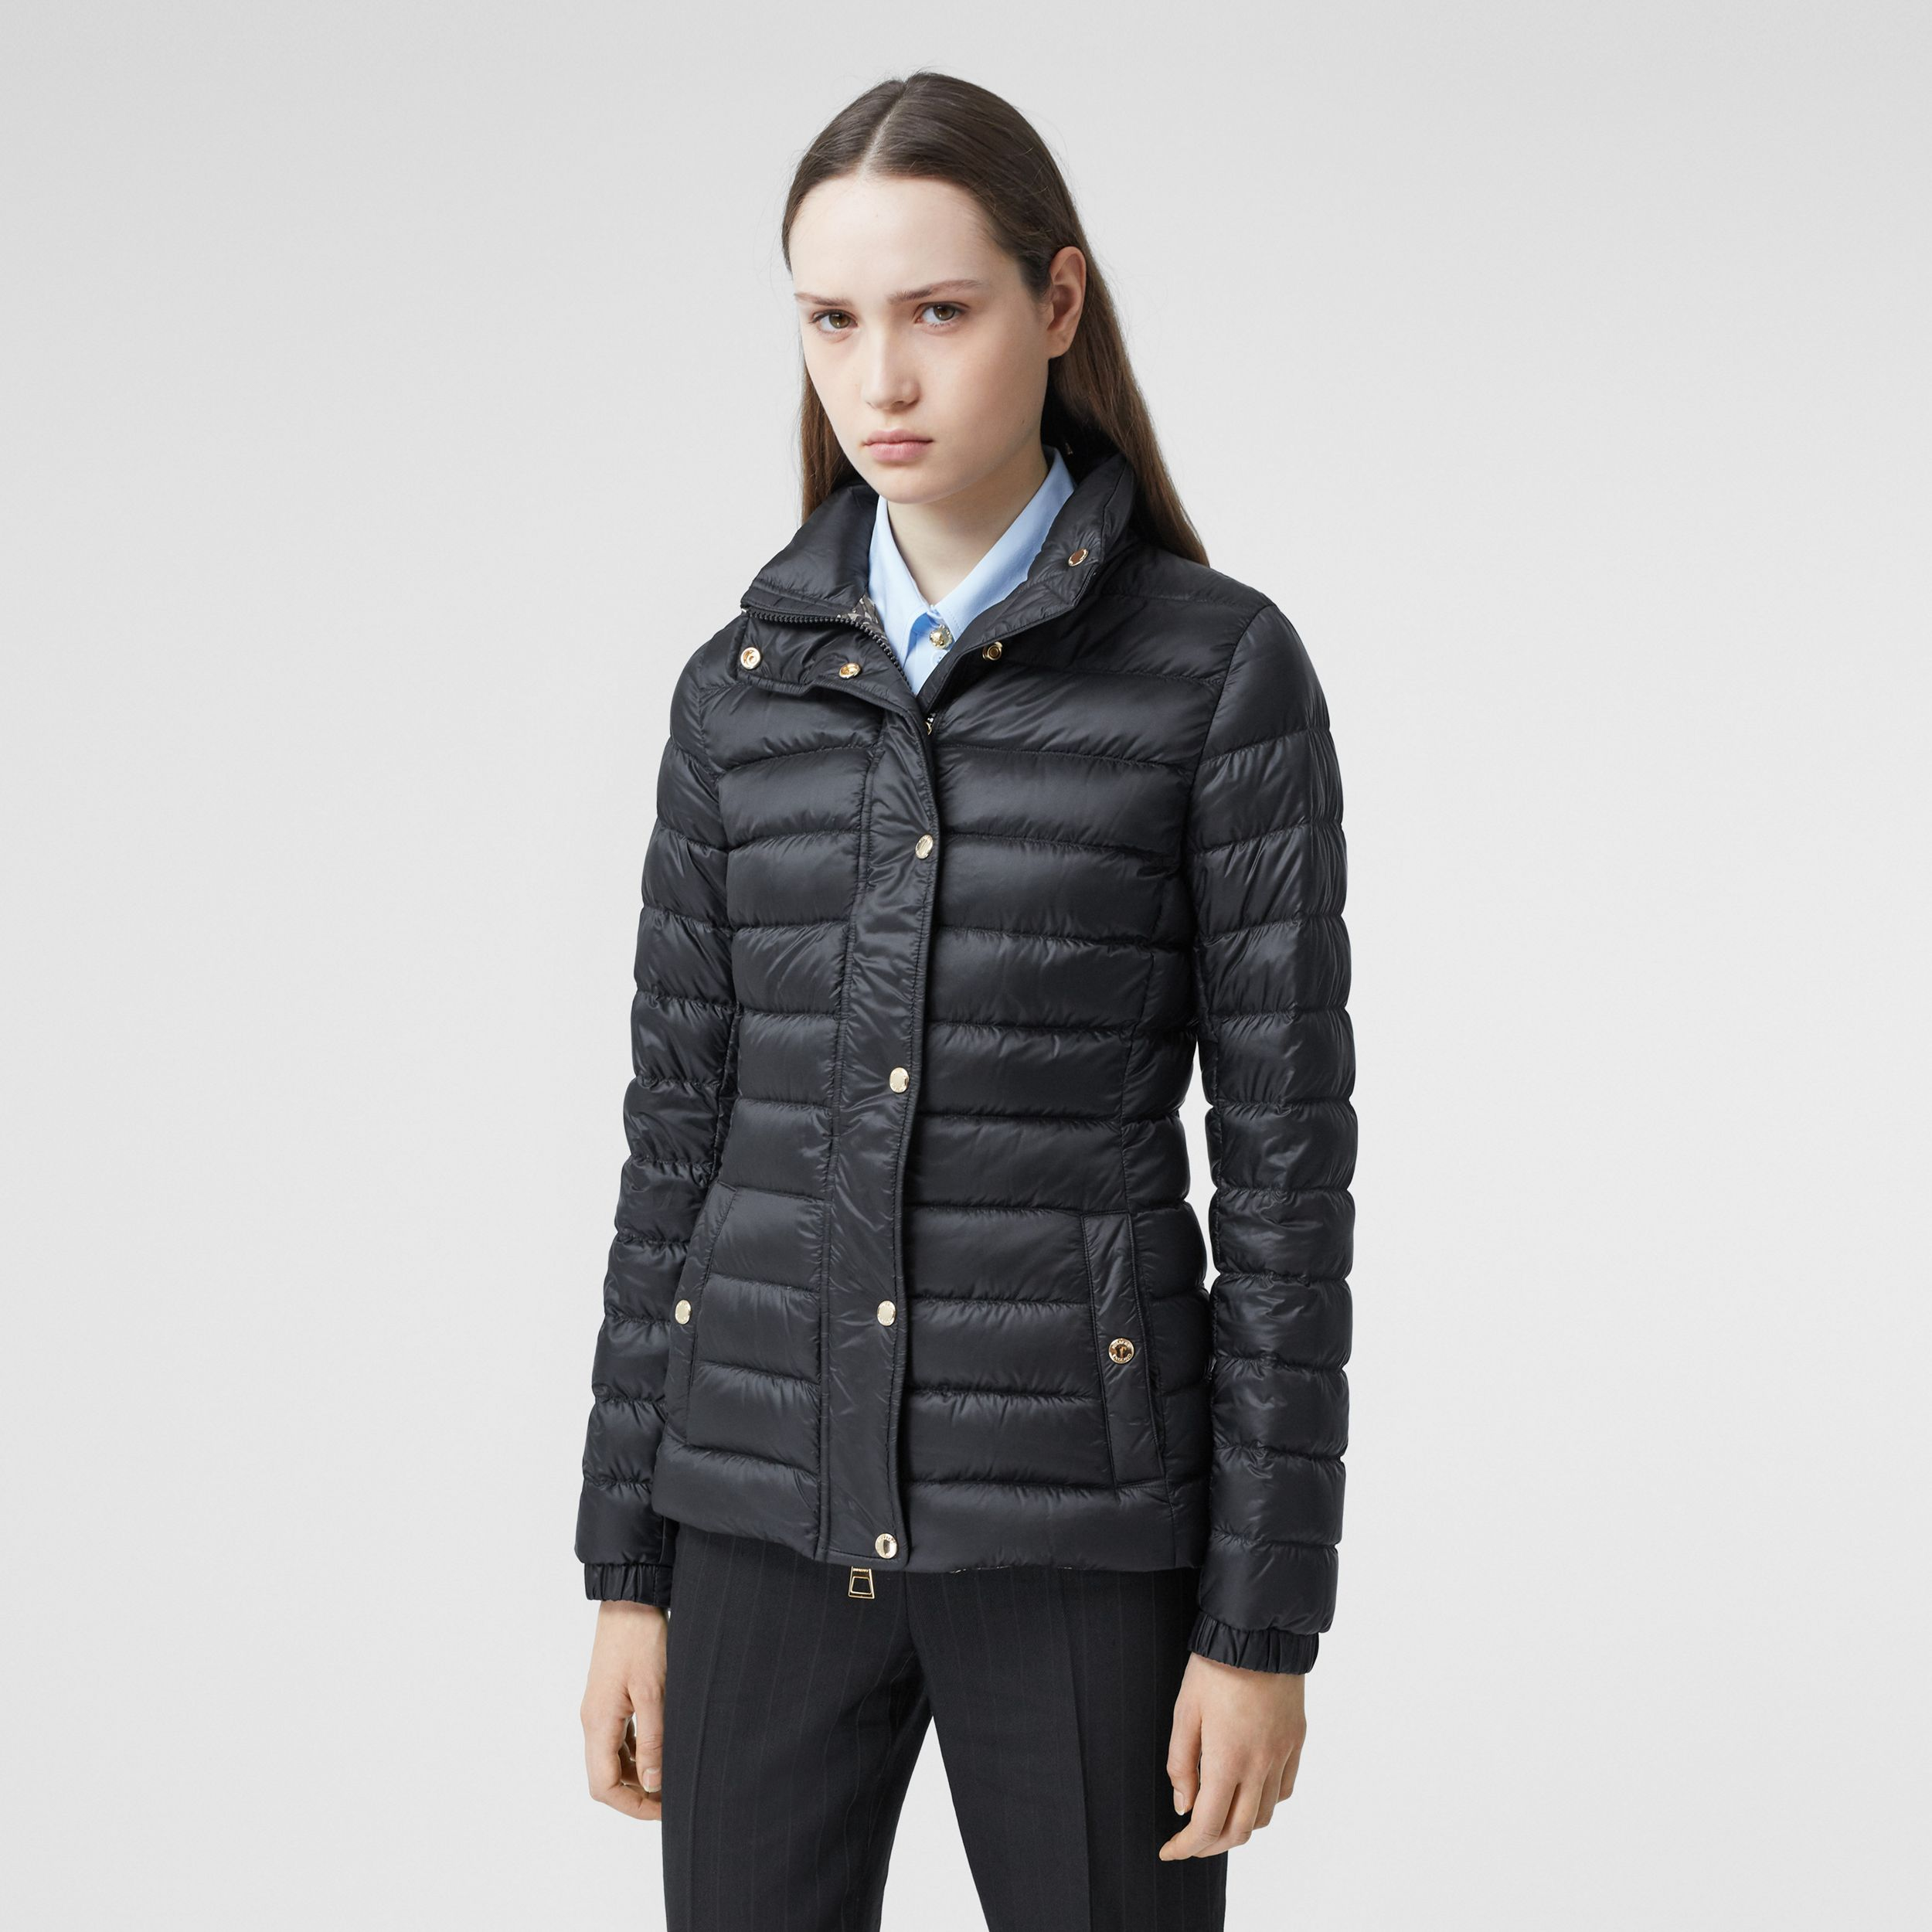 Monogram Print-lined Lightweight Puffer Jacket in Black - Women | Burberry - 1